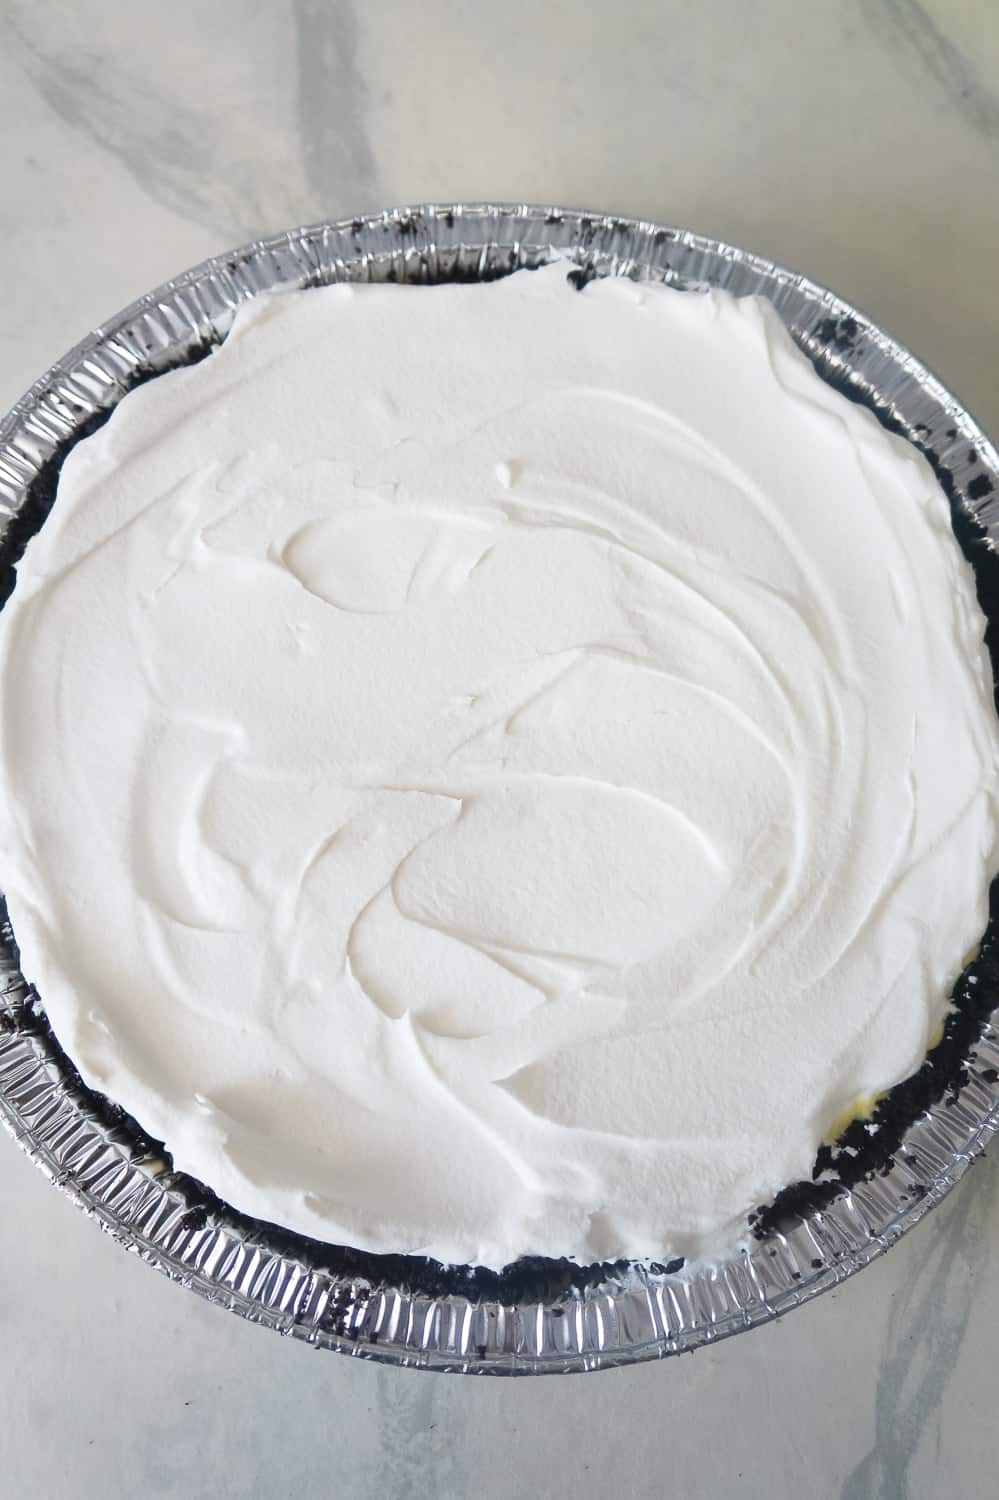 Cool Whip spread on top of no bake lemon pie